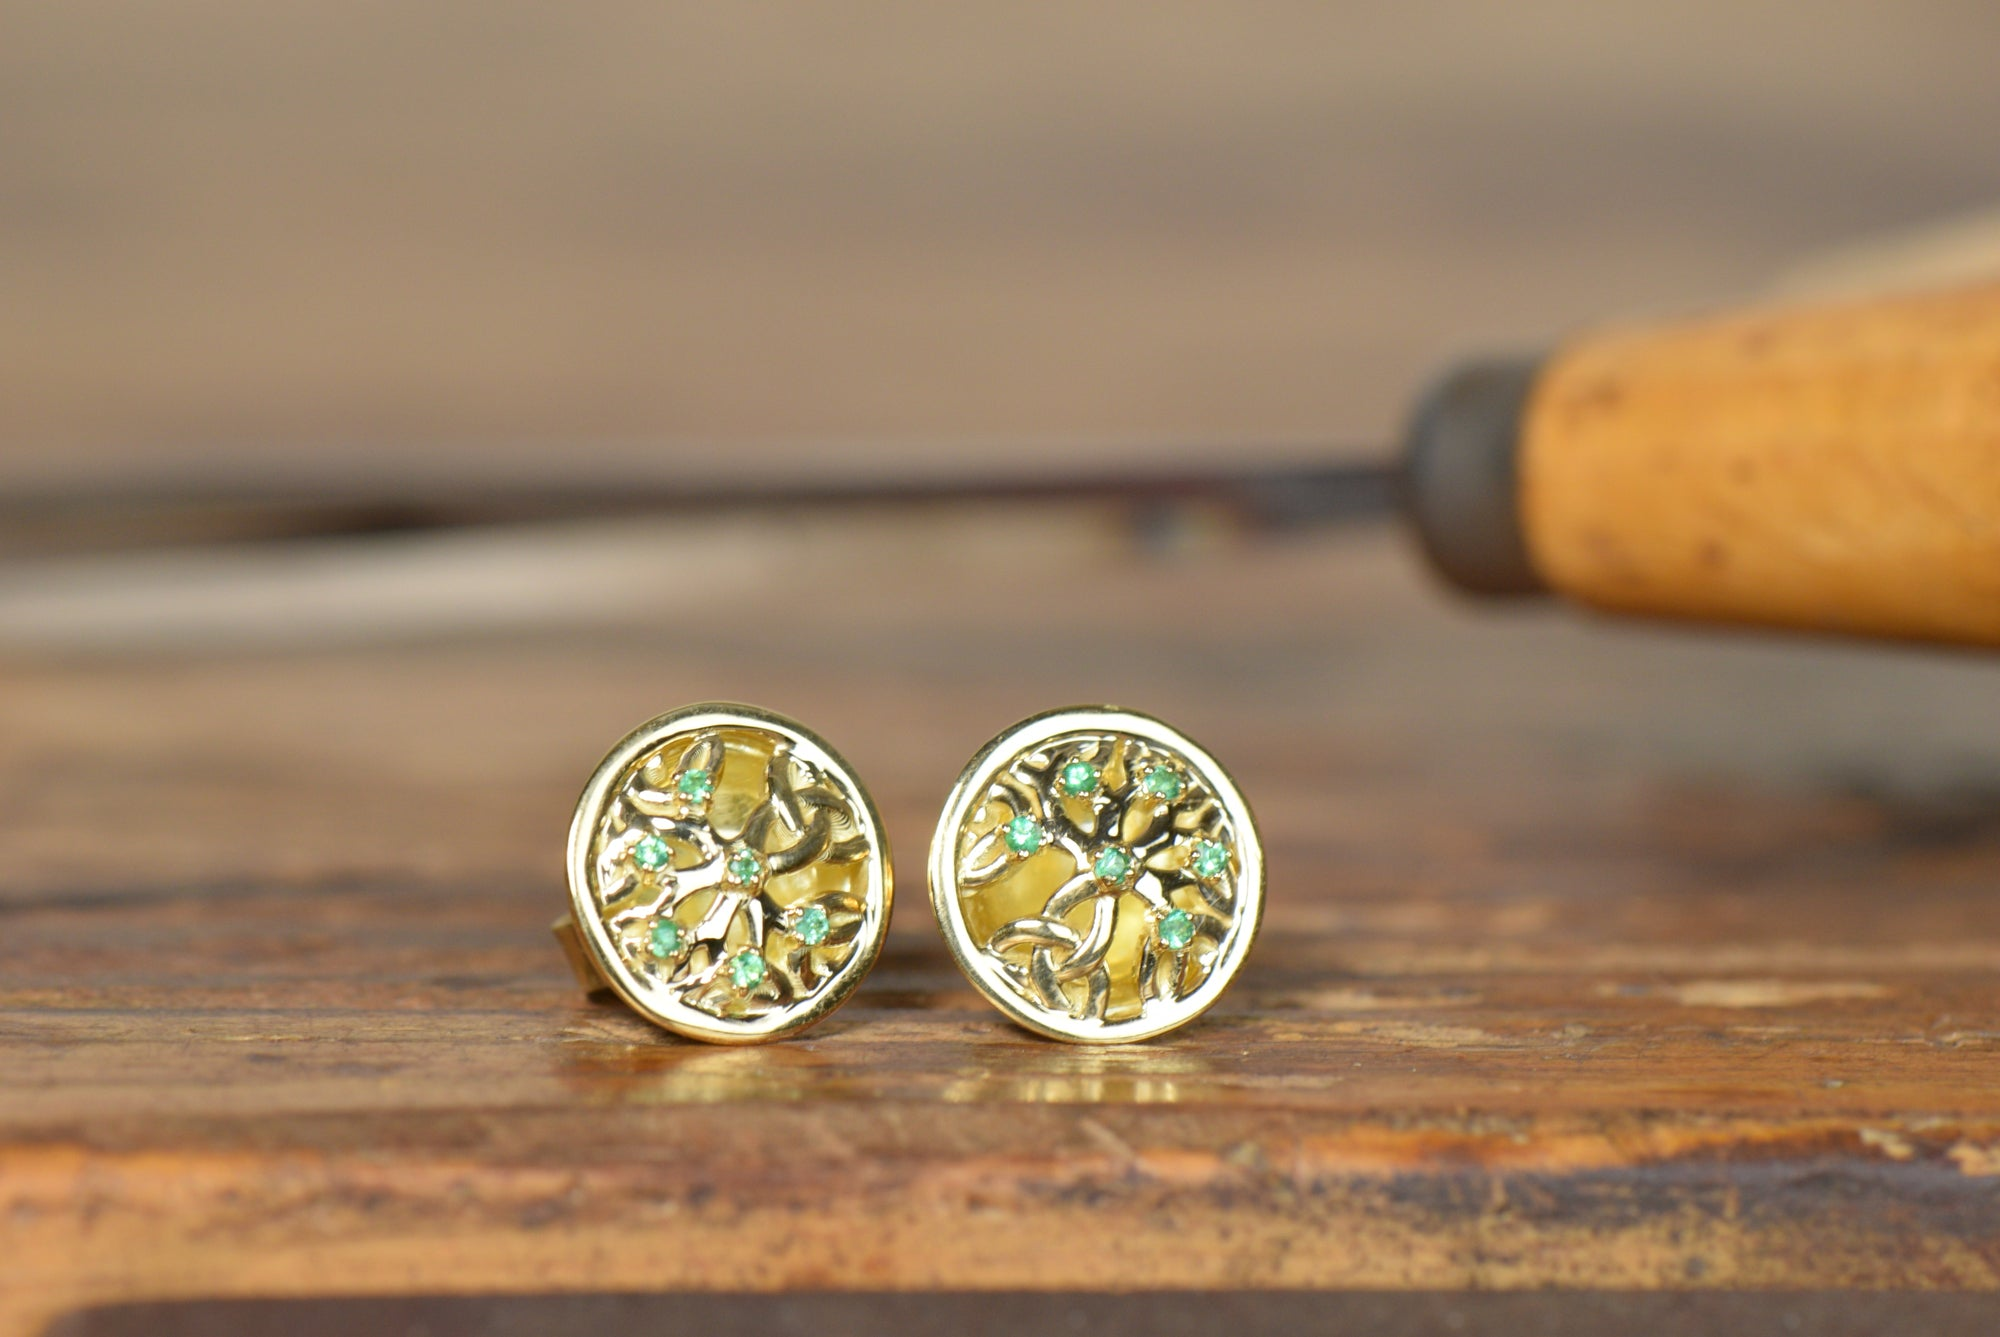 custom bespoke earrings